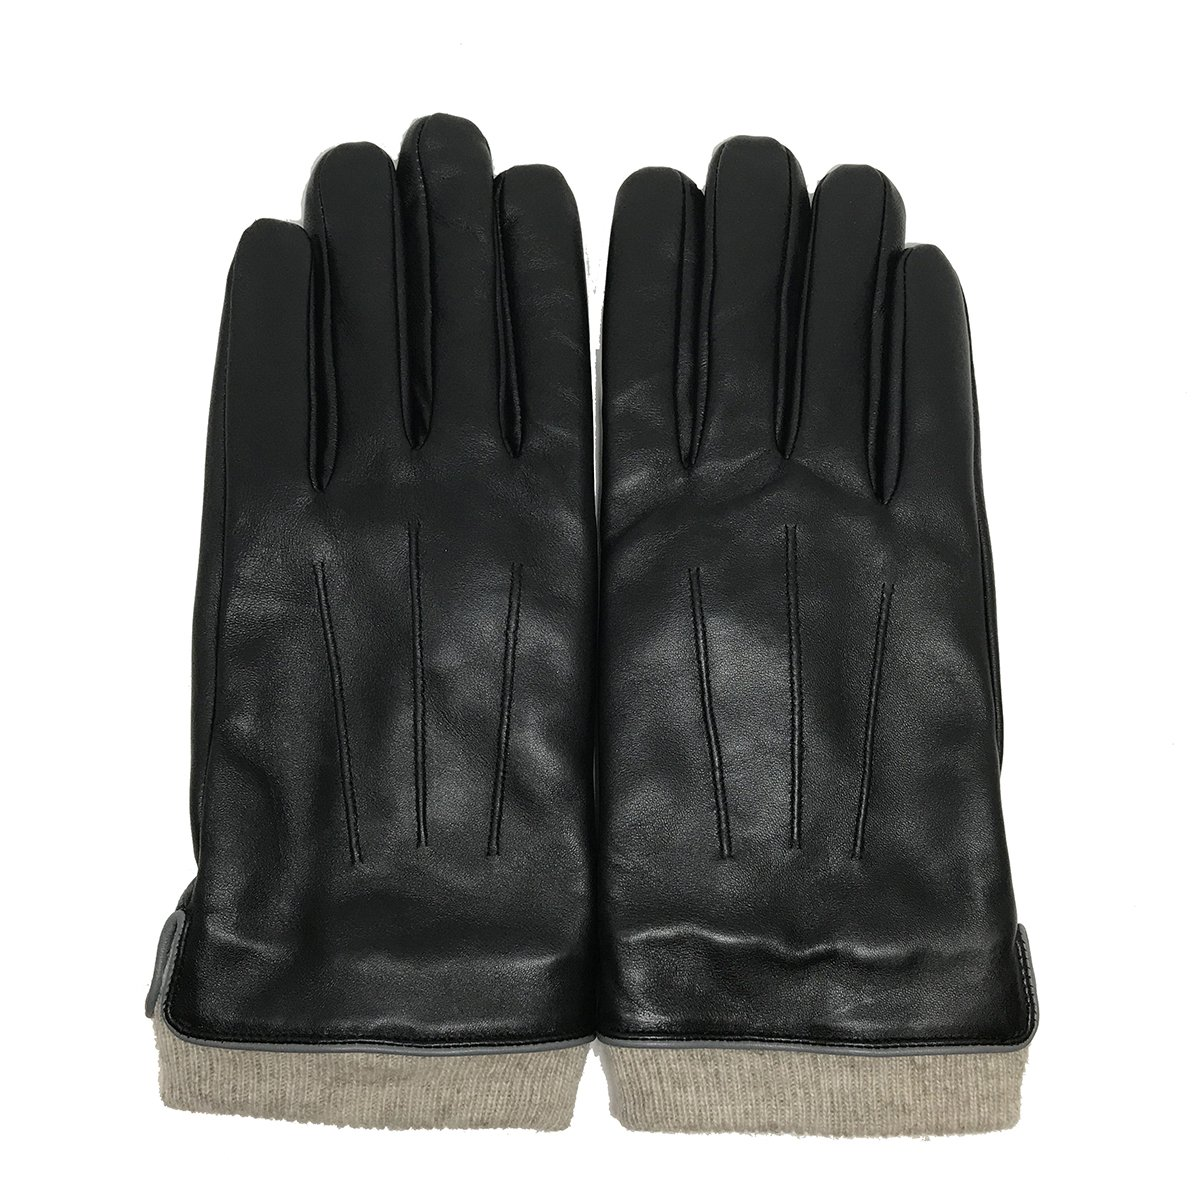 MATSU Men Winter Warm 3M Thinsulate Touchscreen Texting Lambskin Driving Motorcycle Leather Gloves M1006(3m lined) (M, Black)